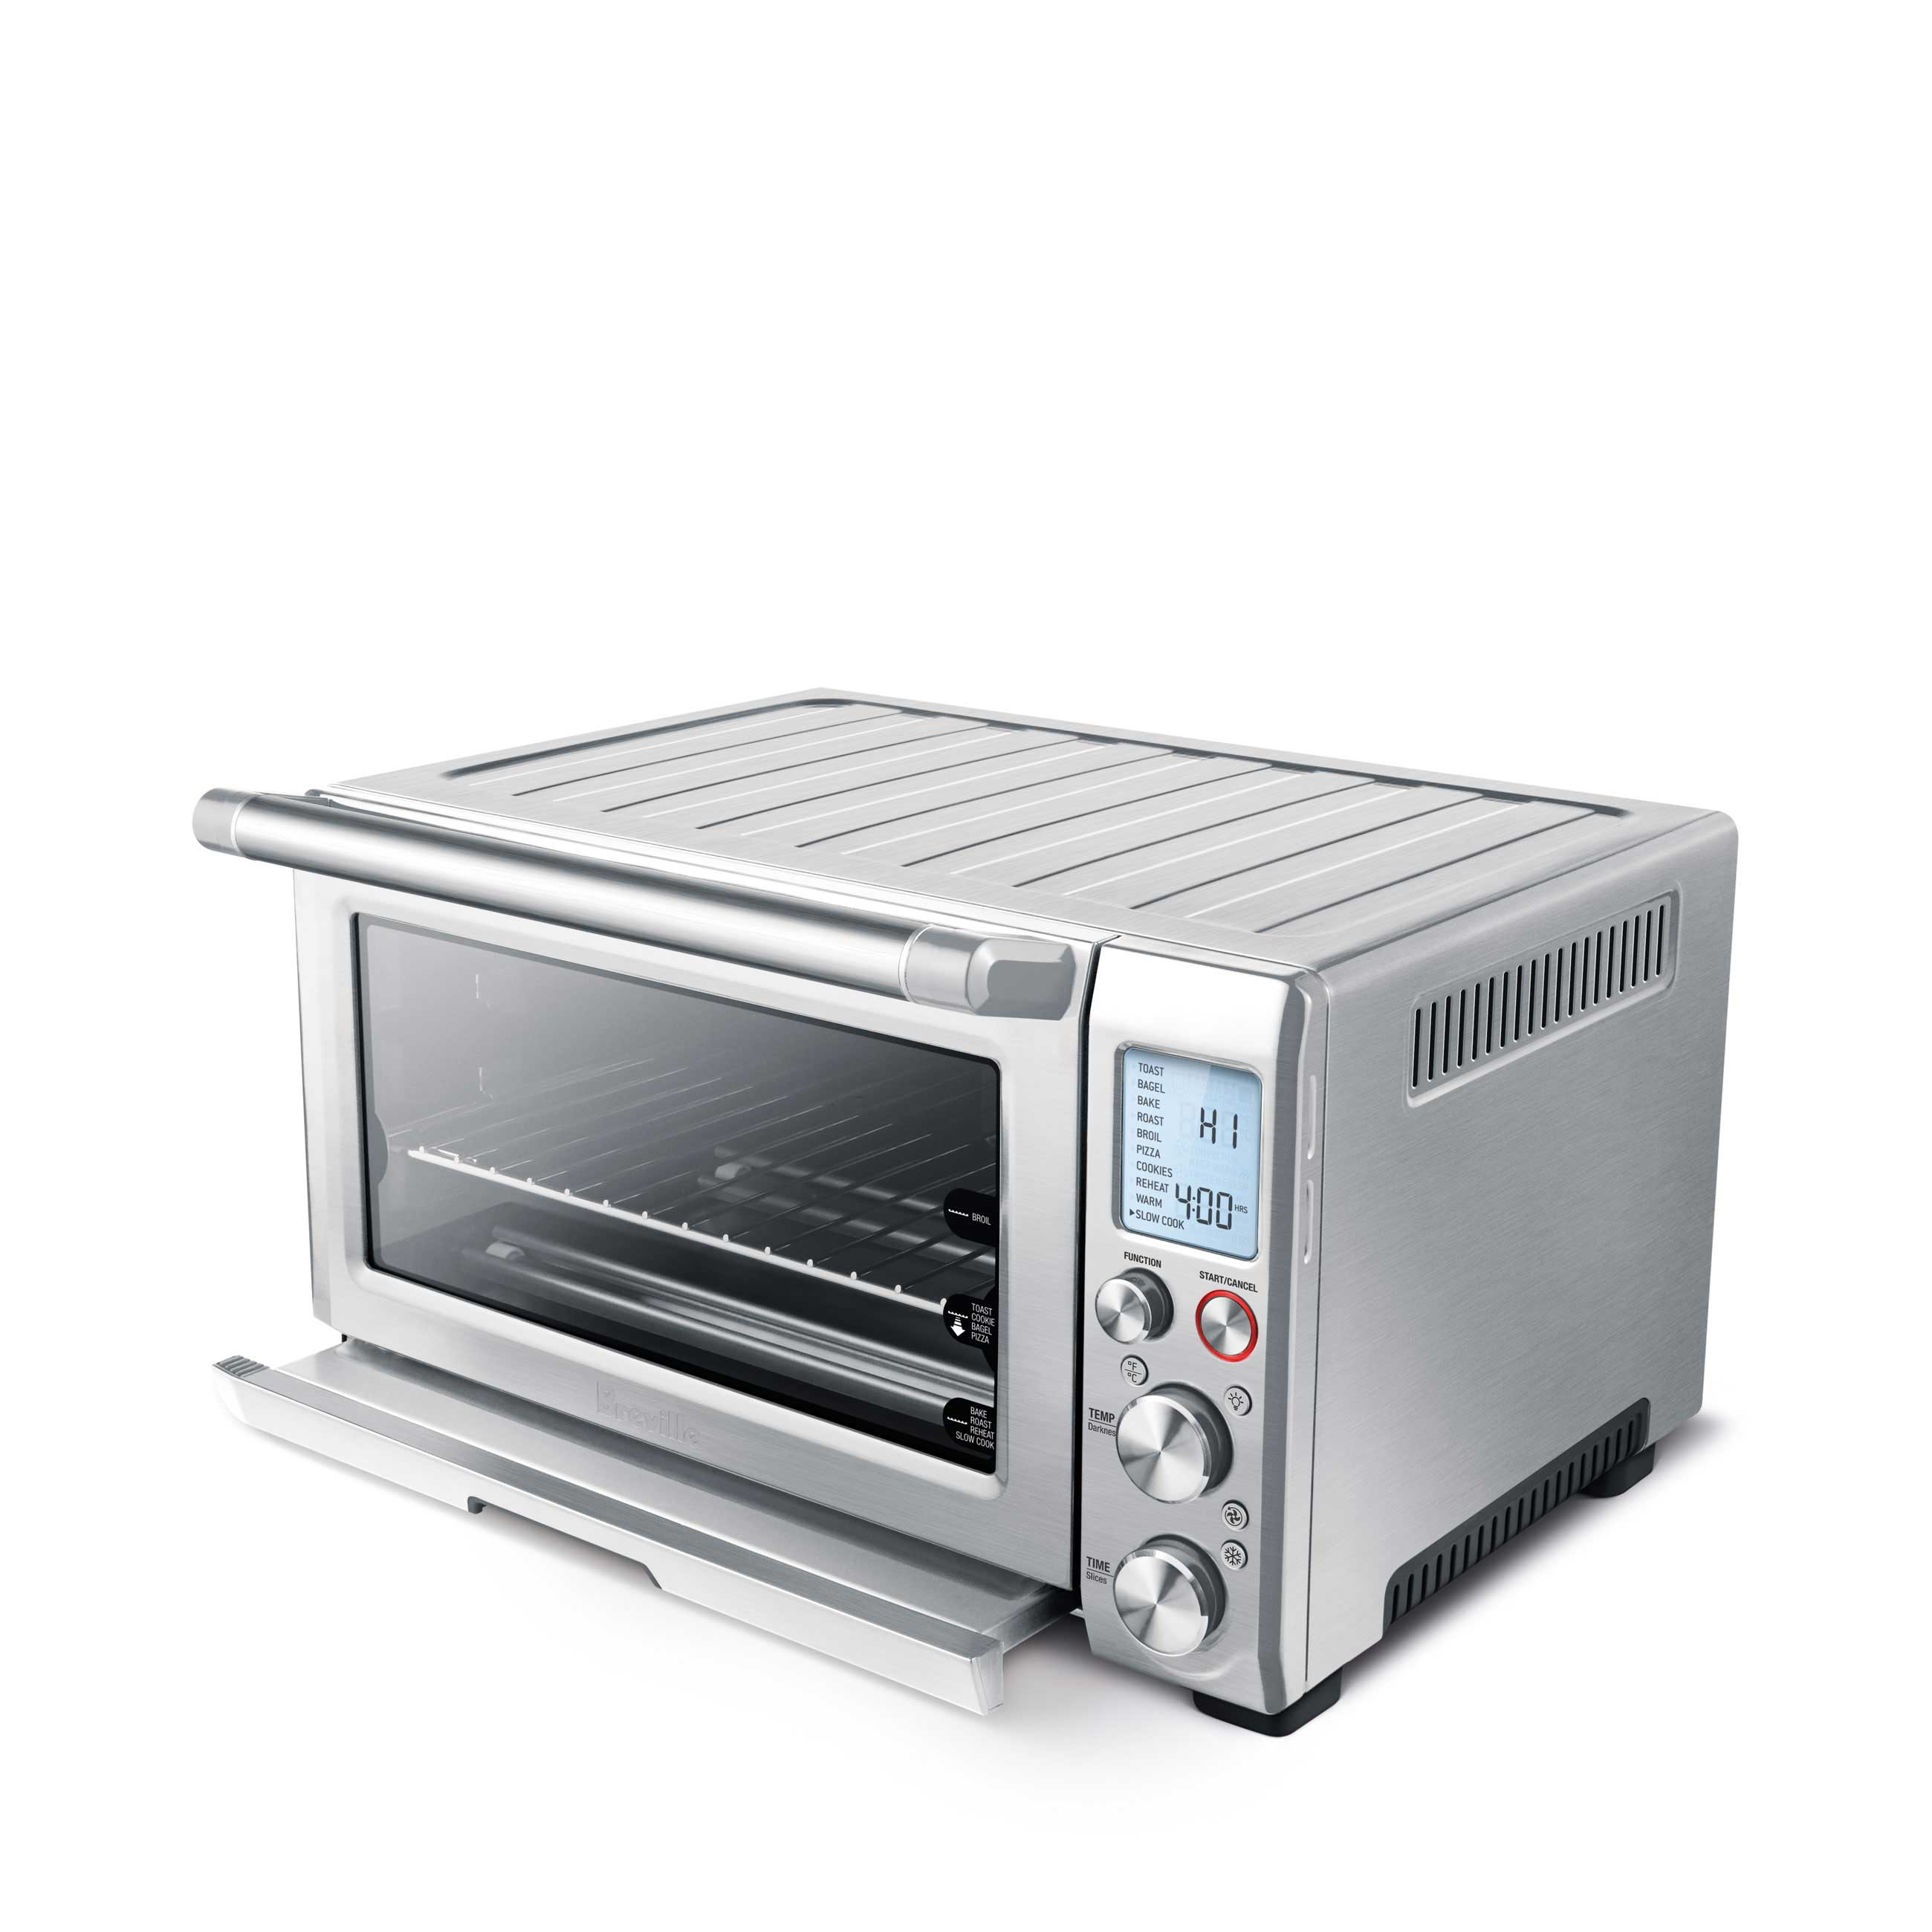 the Smart Oven™ Pro Ovens in Brushed Stainless Steel with lcd display